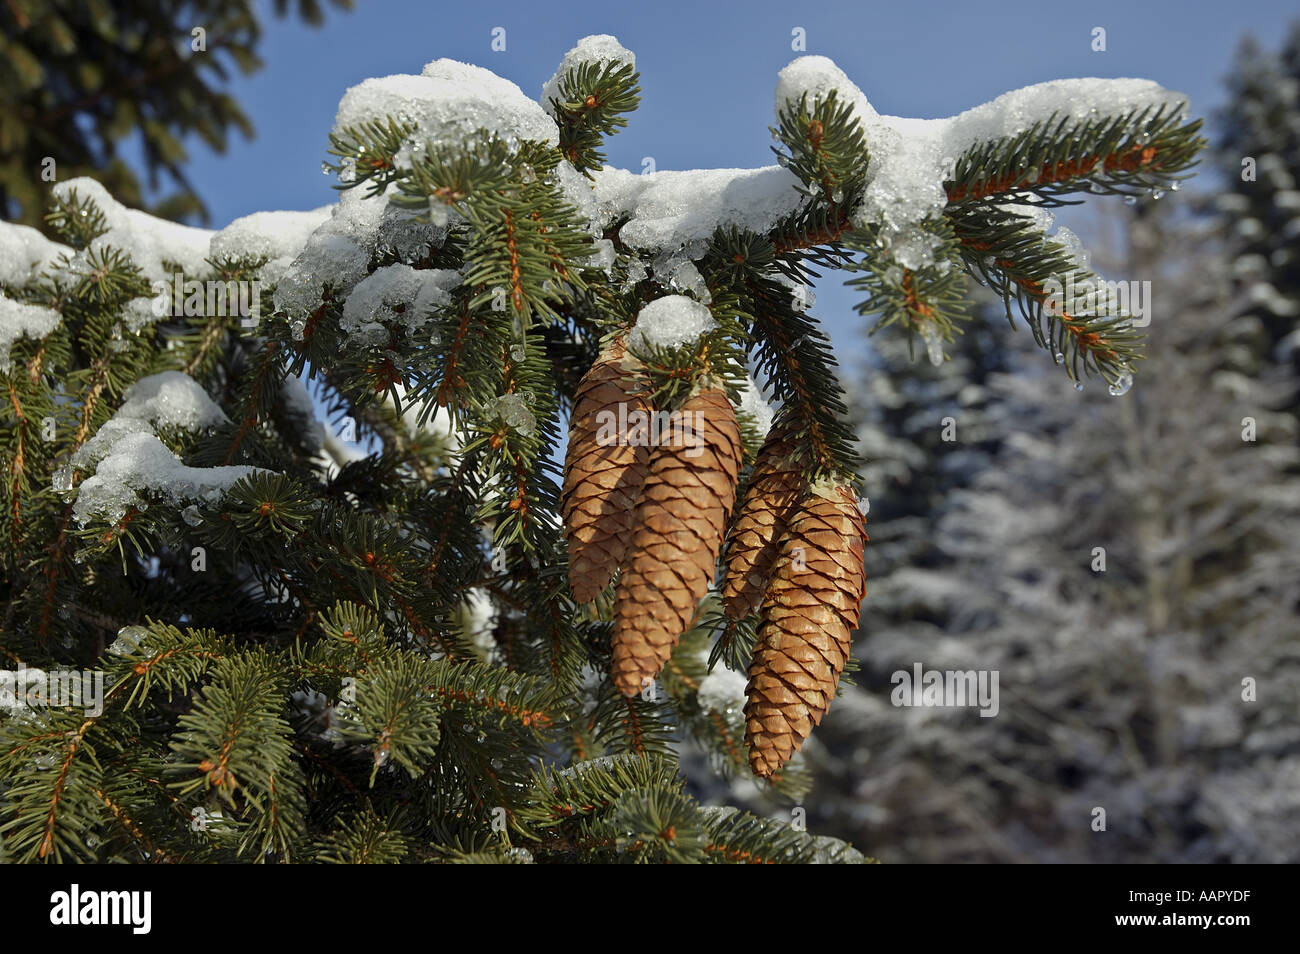 Fir tree cones and branches with snow in winter - Stock Image